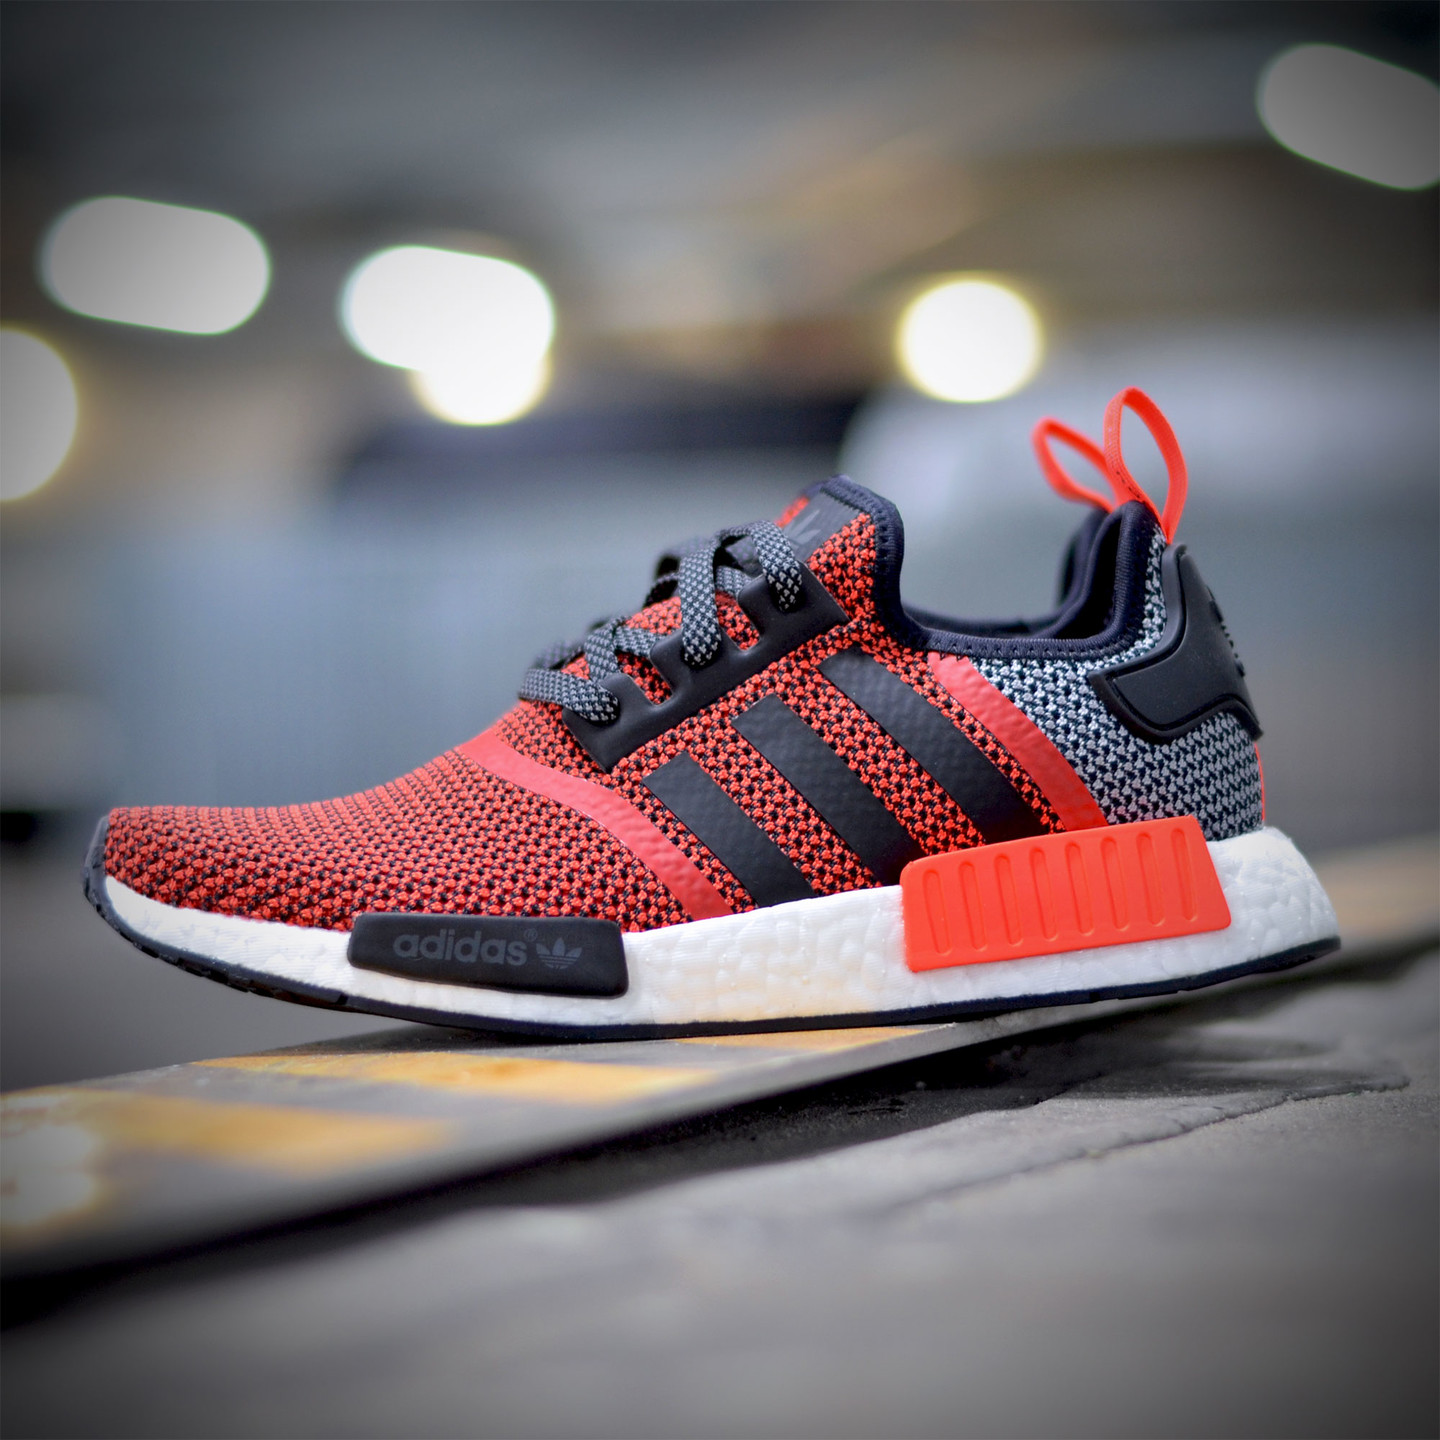 Adidas NMD R1 Runner Lush Red / Core Black S79158-39.33